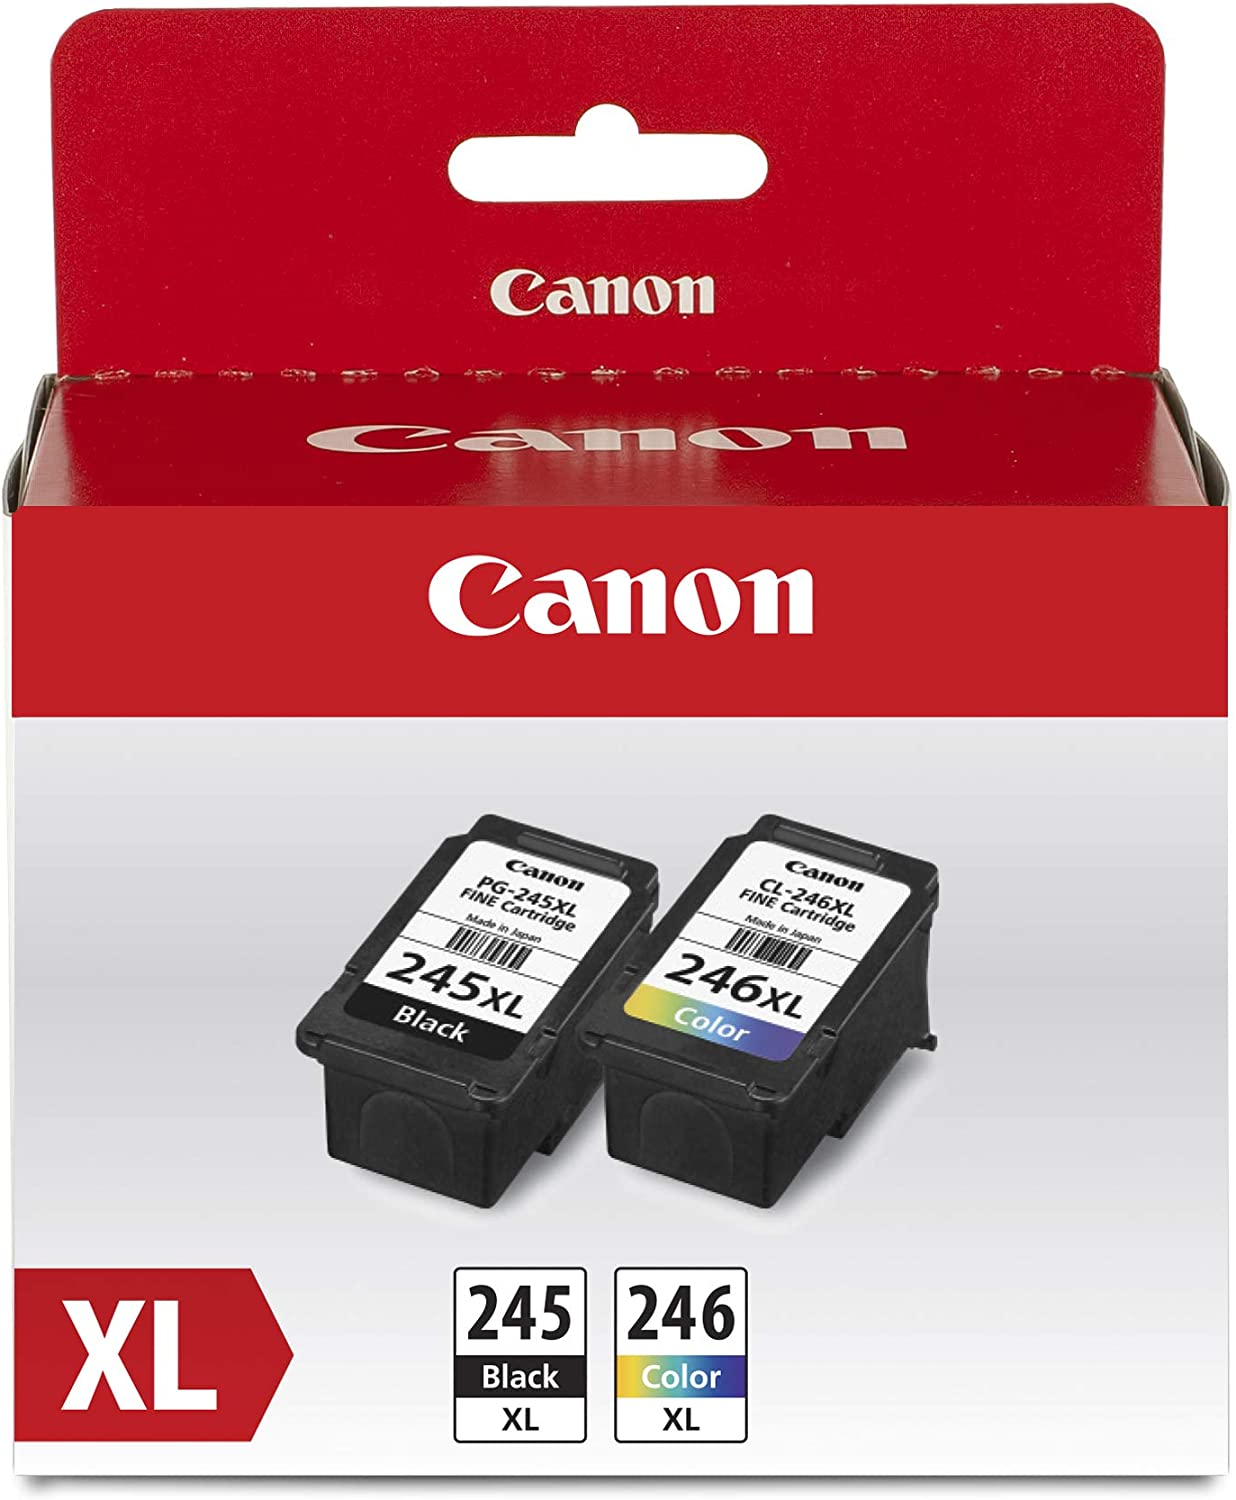 Canon PG-245XL/CL-246XL Ink/Photo Paper Pack, Compatible to MX490, MX492, MG2522, MG3020,MG2920,MG2924,iP2820,MG2525 and MG2420